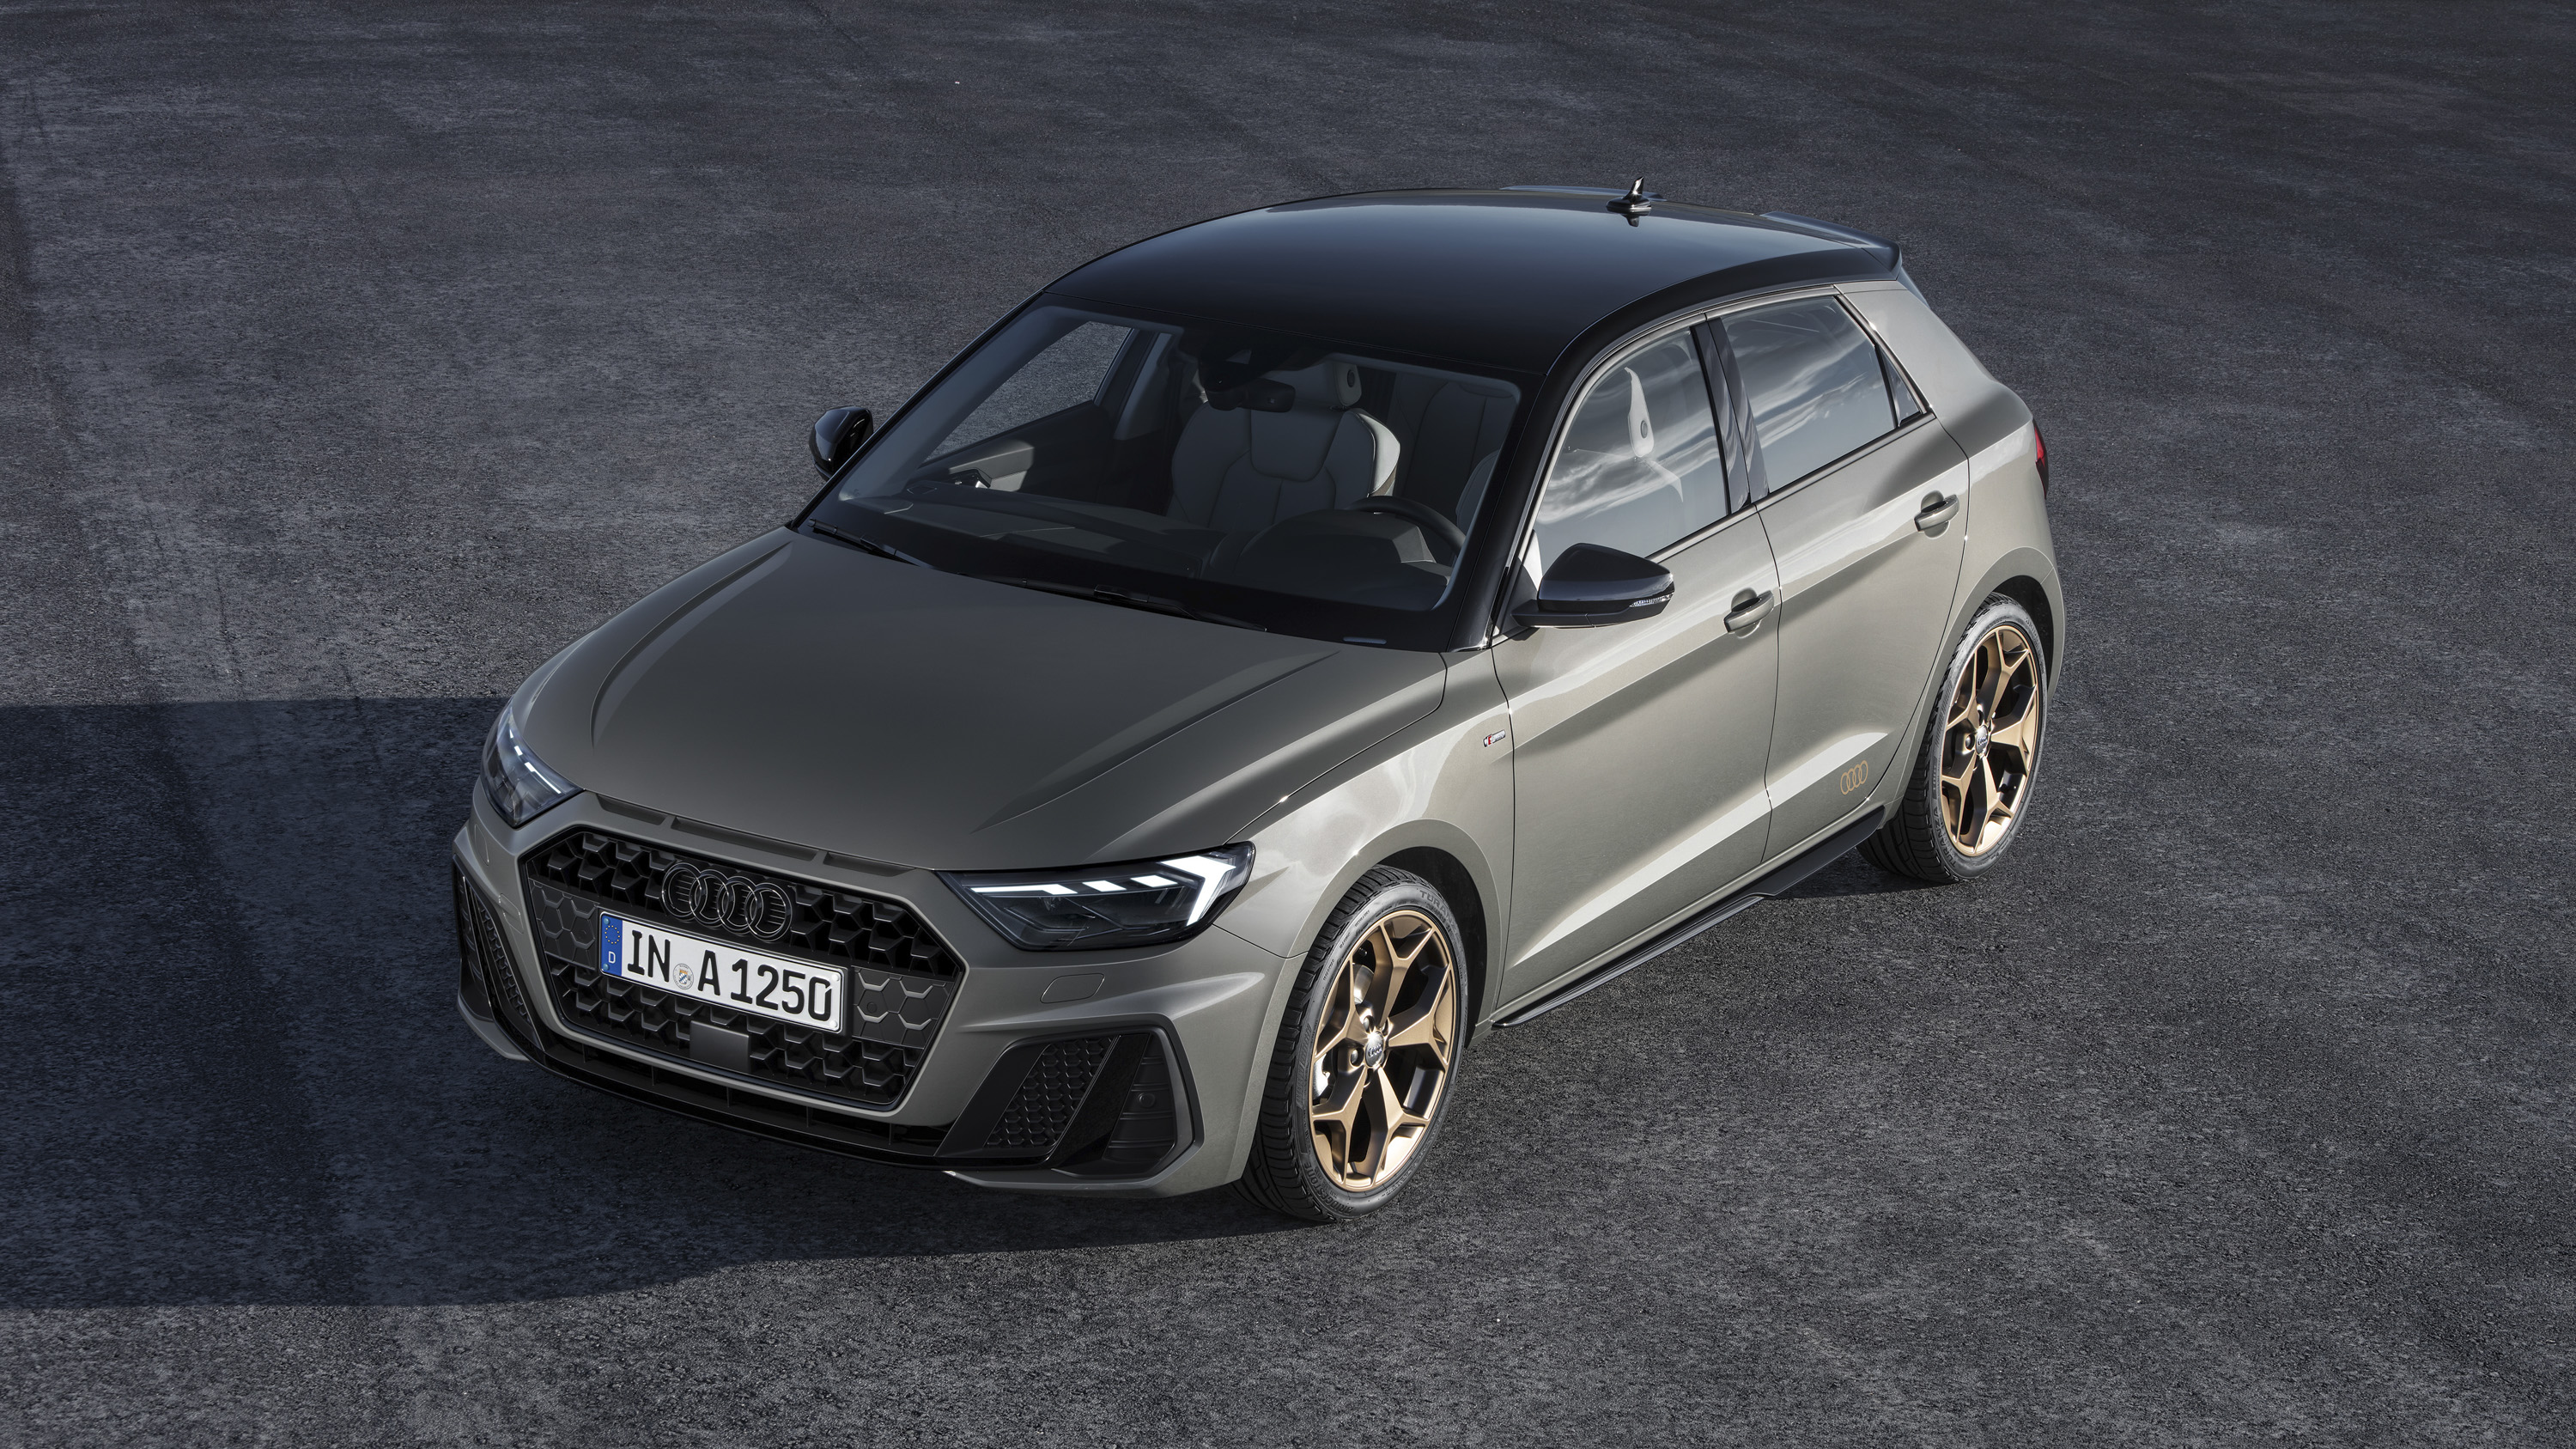 2019 Audi A1 Top Speed